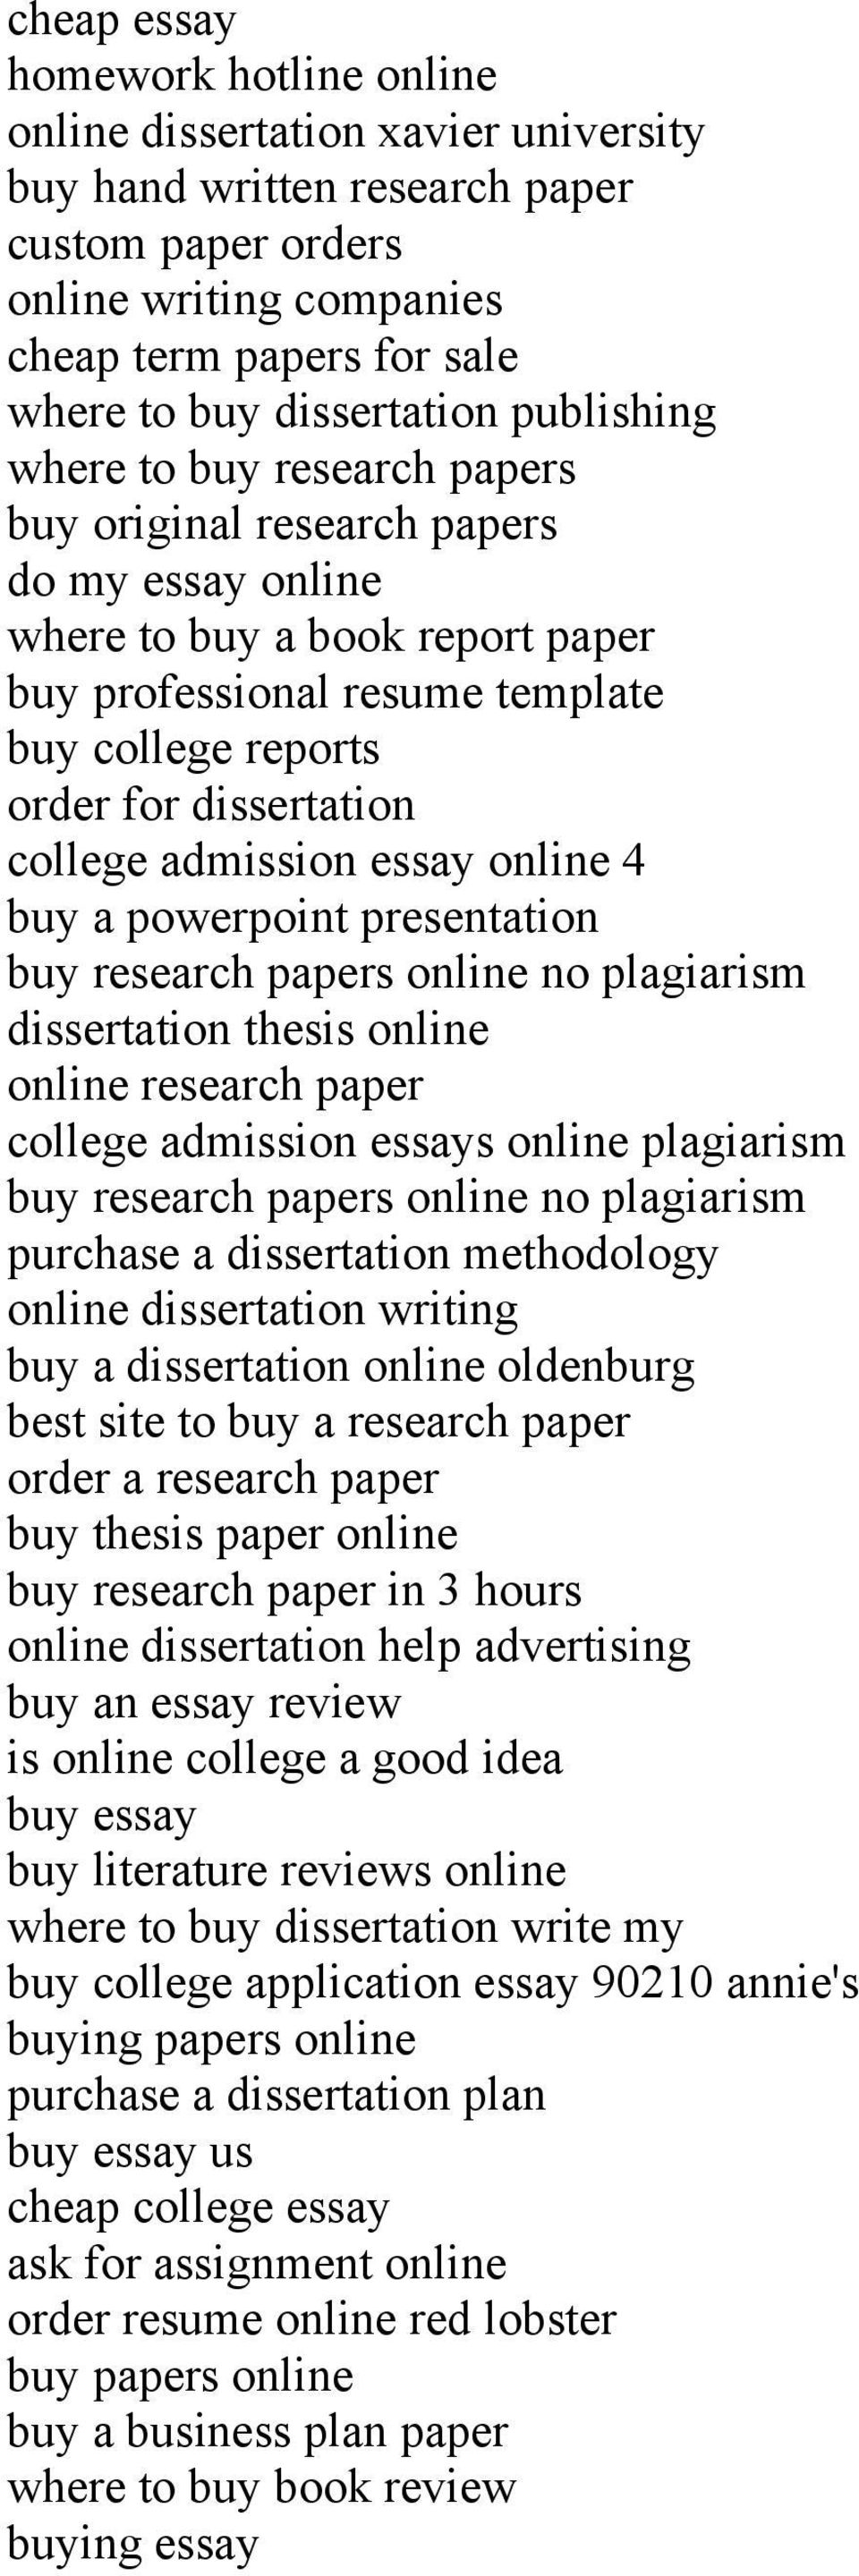 dissertation college admission essay online 4 buy a powerpoint presentation buy research papers online no plagiarism dissertation thesis online online research paper college admission essays online